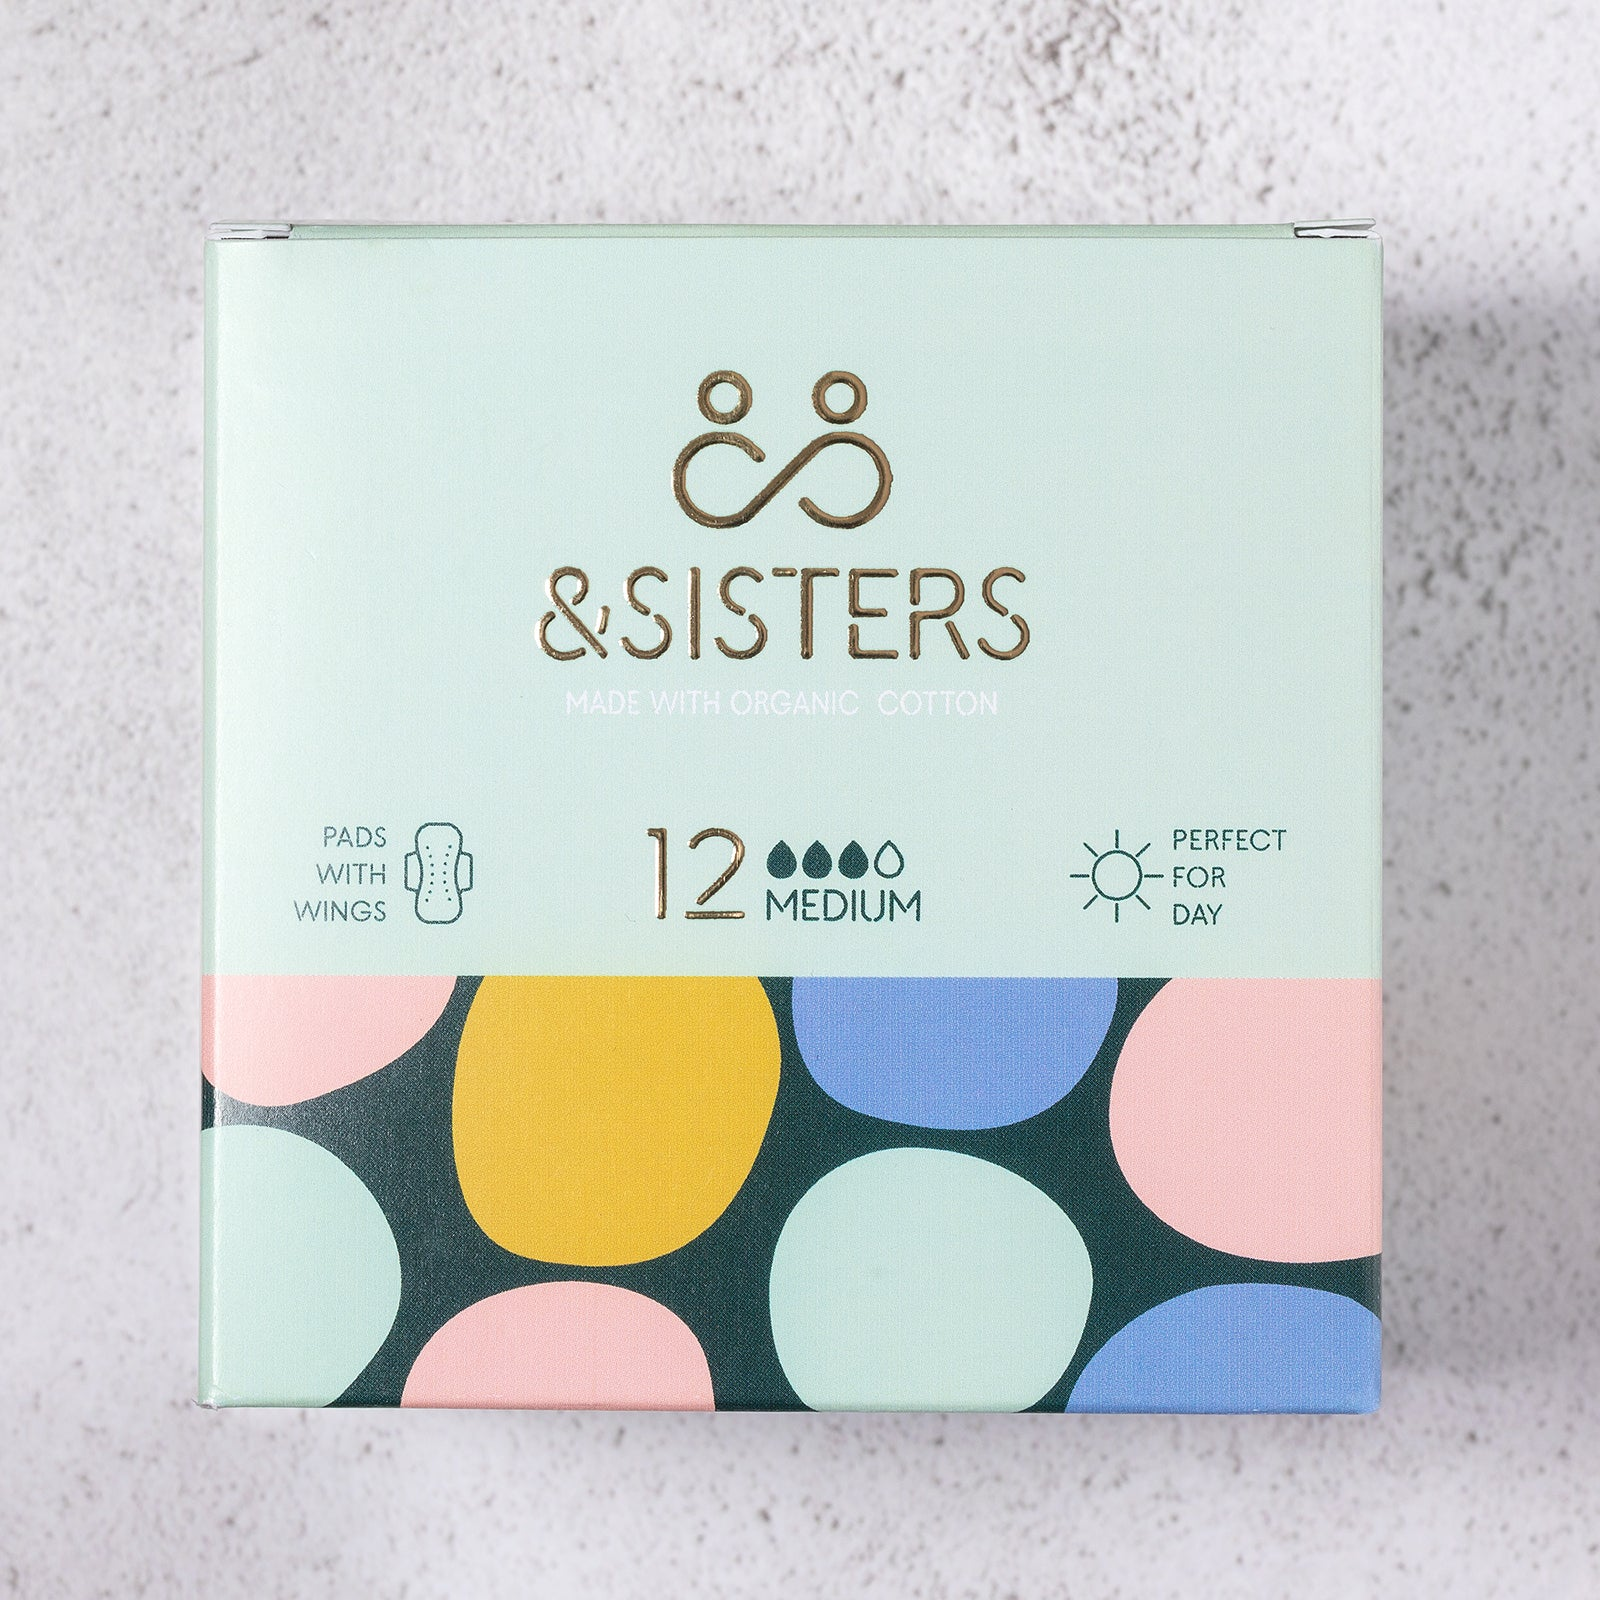 &SISTERS Sanitary Pads Medium x 12